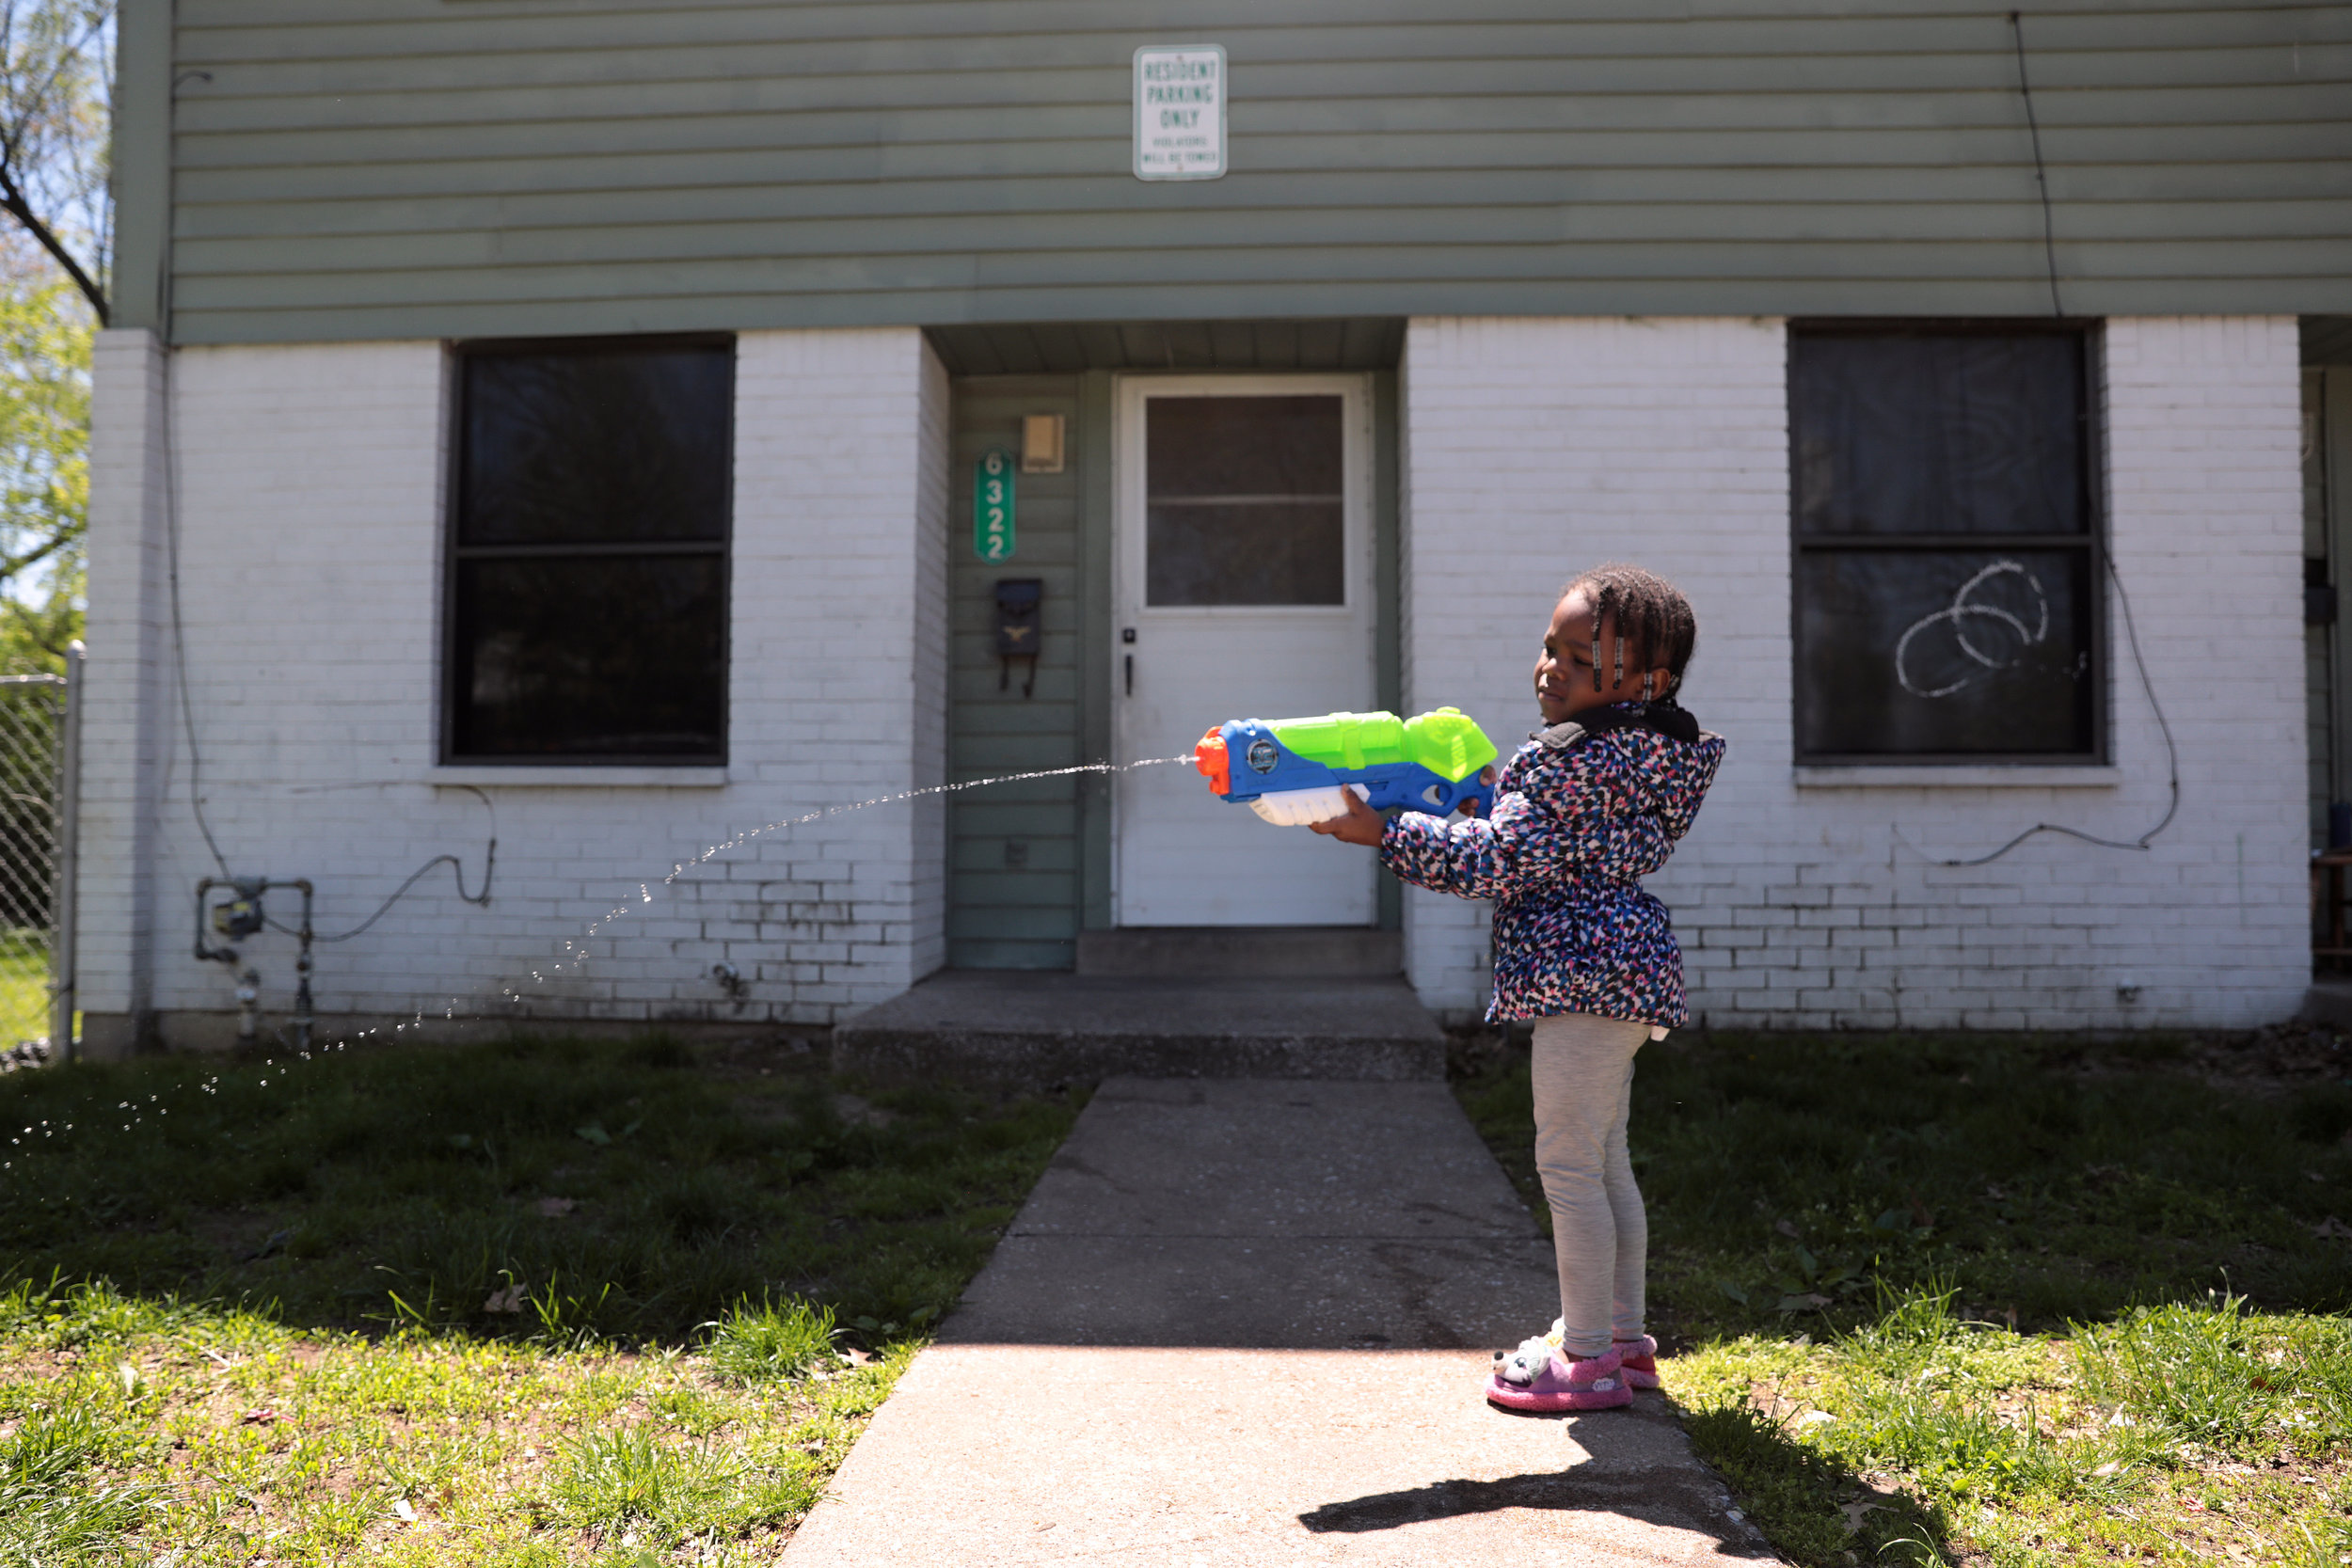 Rylie Vickers, 3, plays outside her apartment complex on Isabella Avenue in Wellston on Friday, April 26, 2019. The U.S. Department of Housing and Urban Development is looking to demolish or get rid of 201 public housing units in Wellston, which could affect the apartment complex and many others in the area.